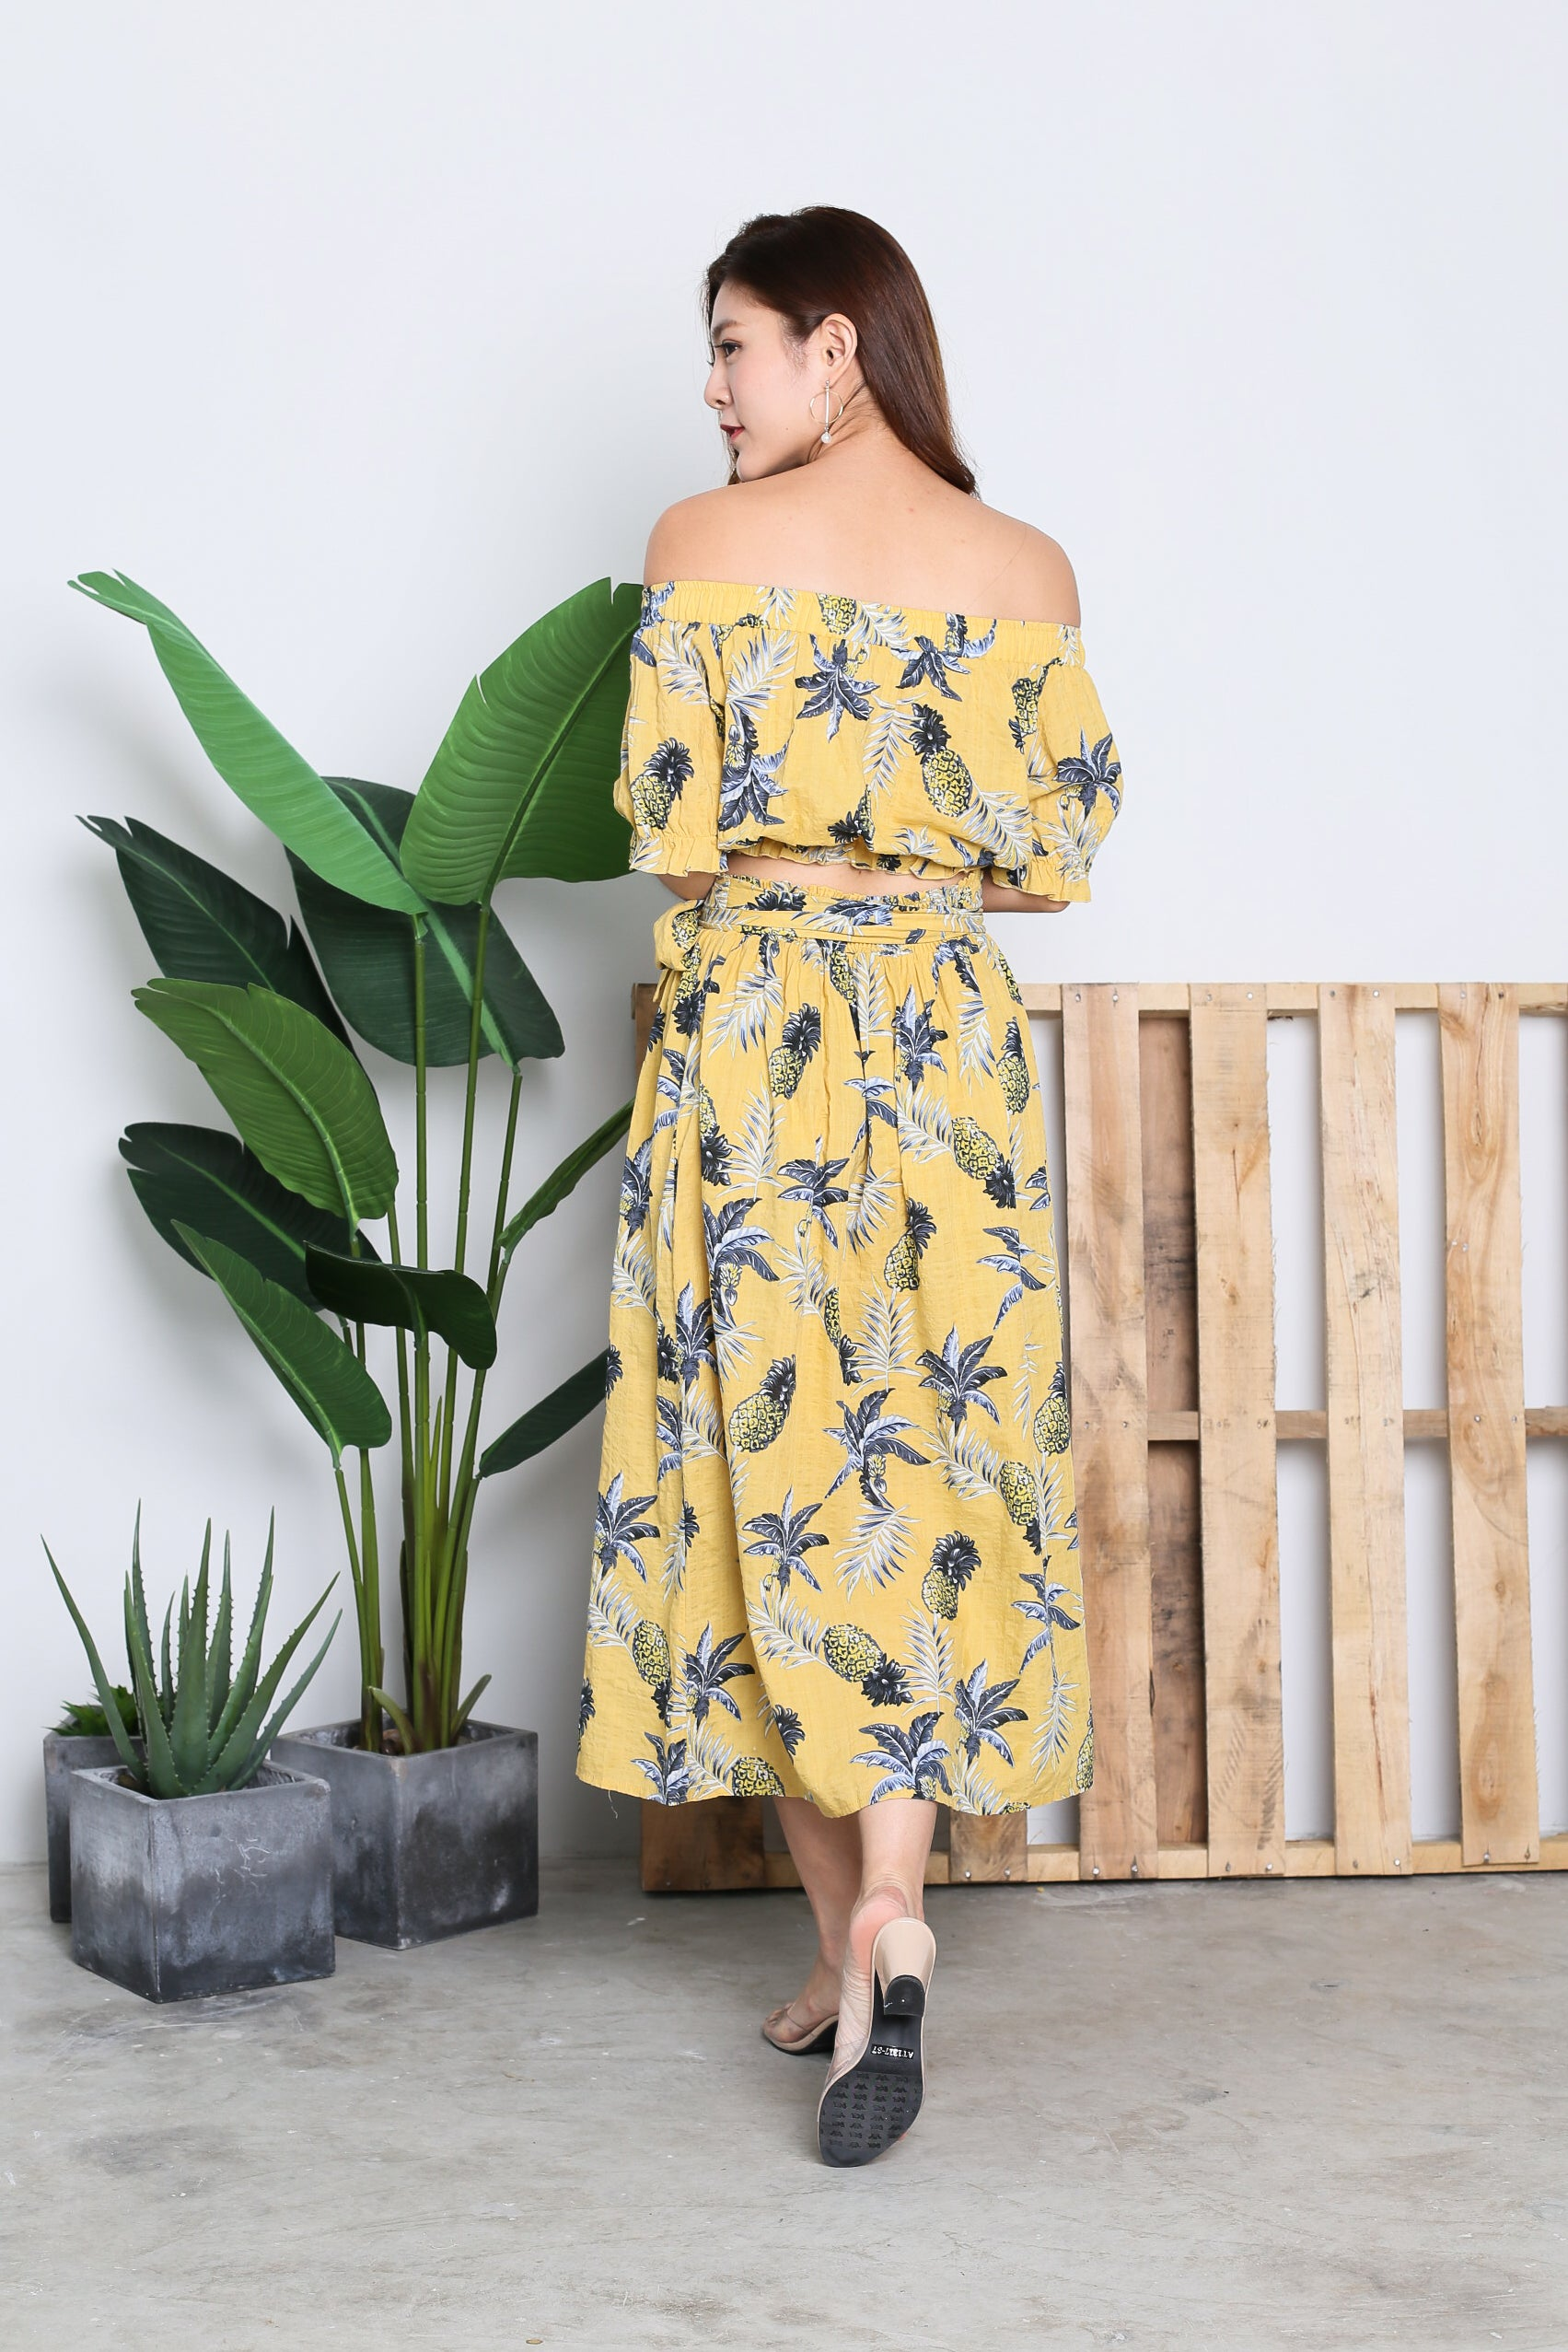 SPRINGTIME PINEAPPLE OFF SHOULDER TOP IN SUNSHINE